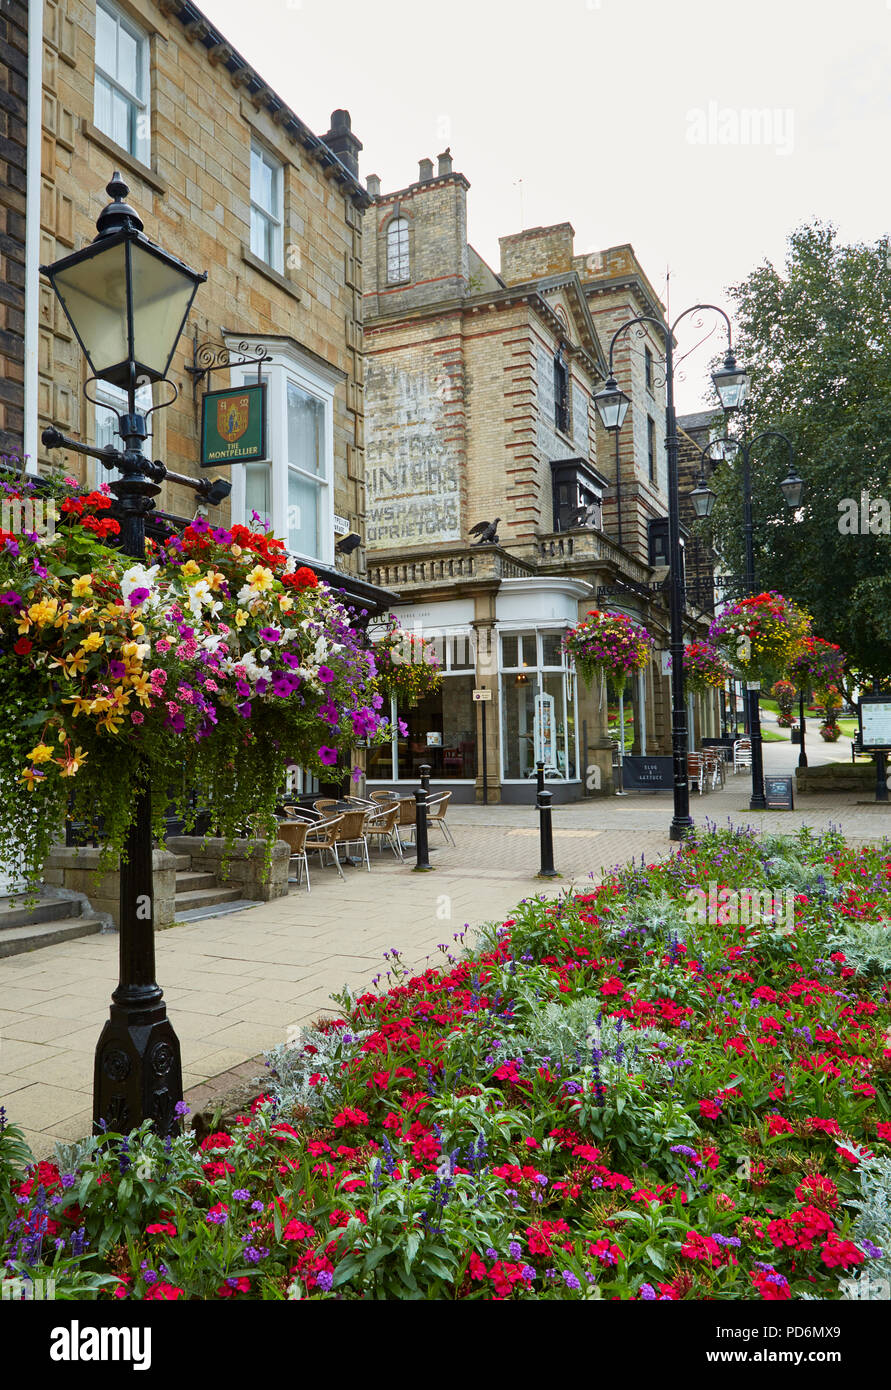 Montpellier Quarter, Harrogate with cast iron street lamps and charming floral hanging baskets in a chic, cosmopolitan shopping area. - Stock Image